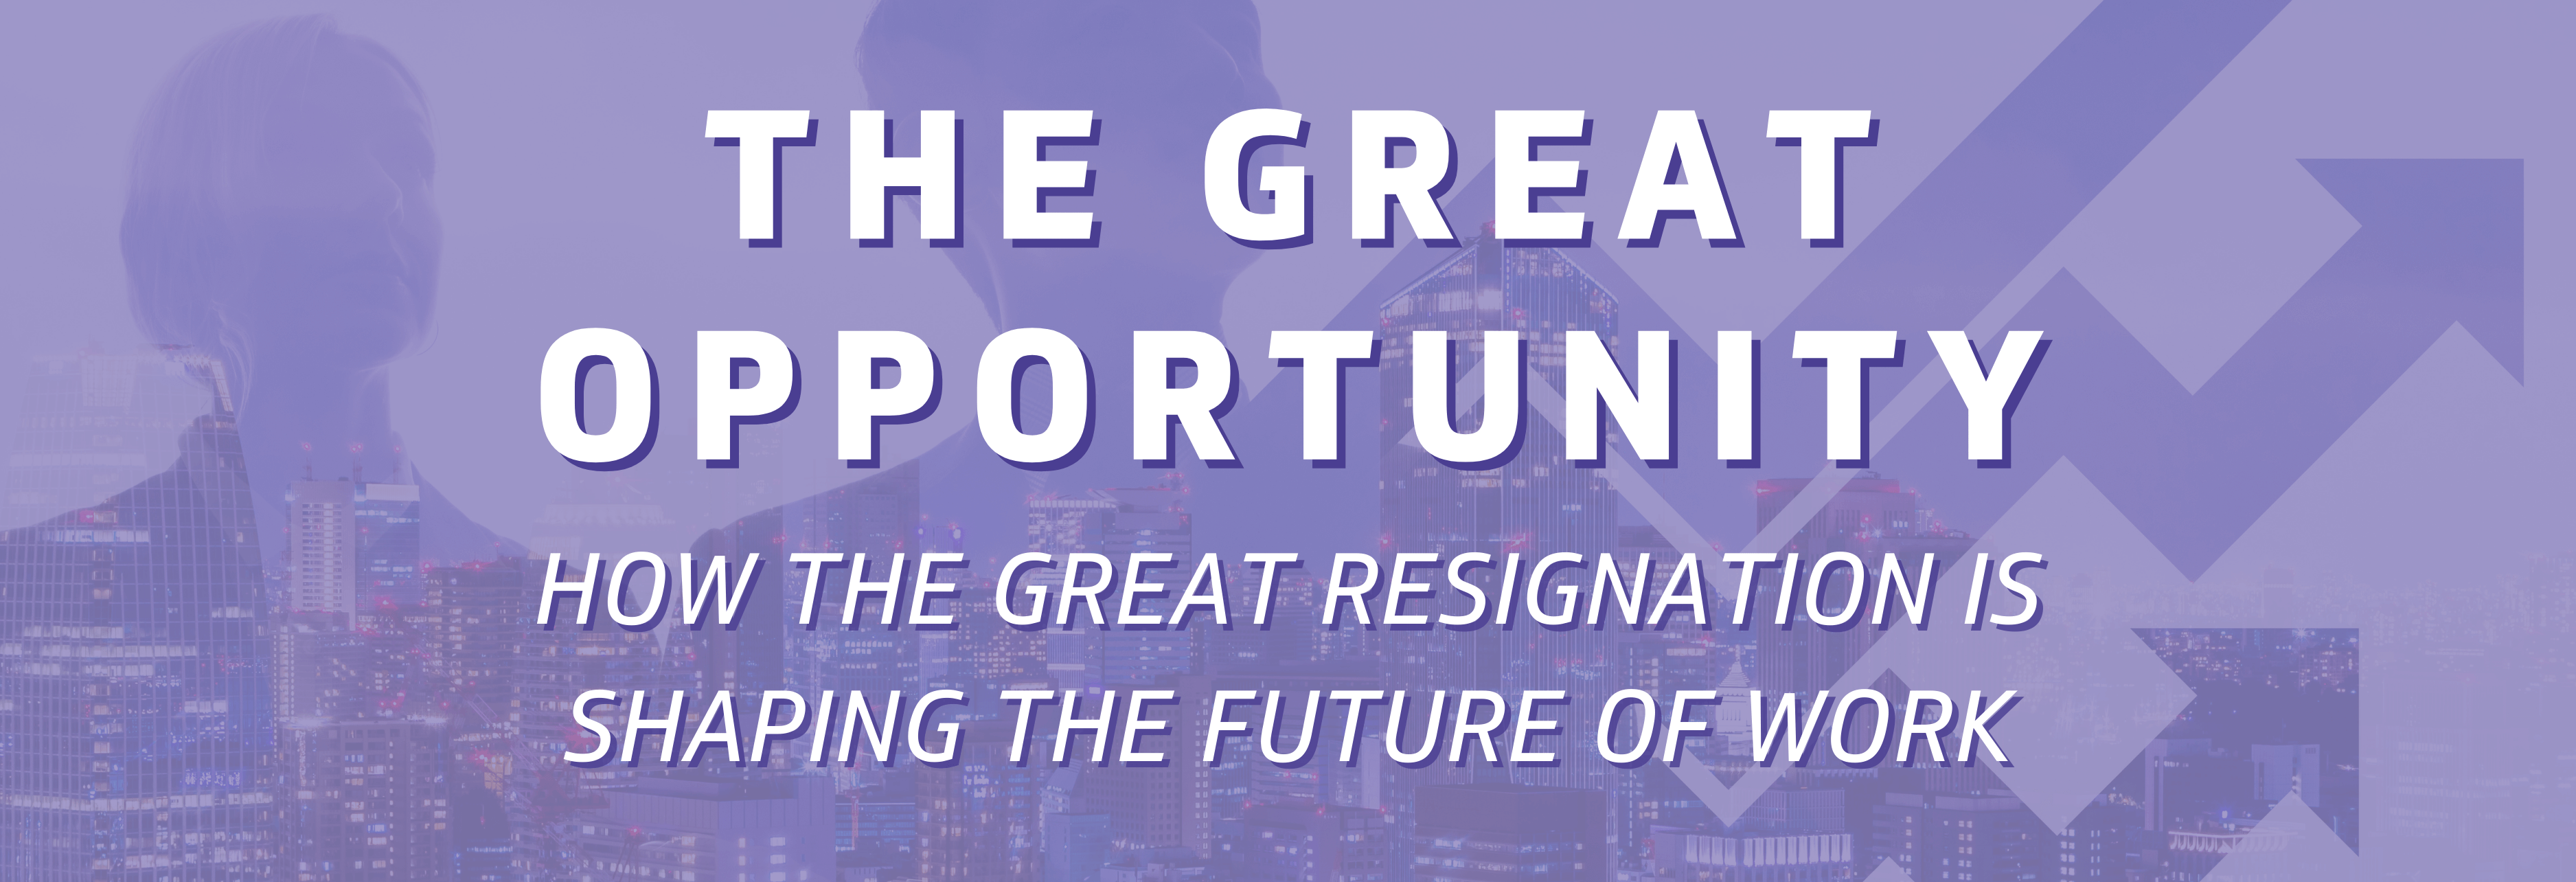 The Great Opportunity: How the Great Resignation is Shaping the Future of Work